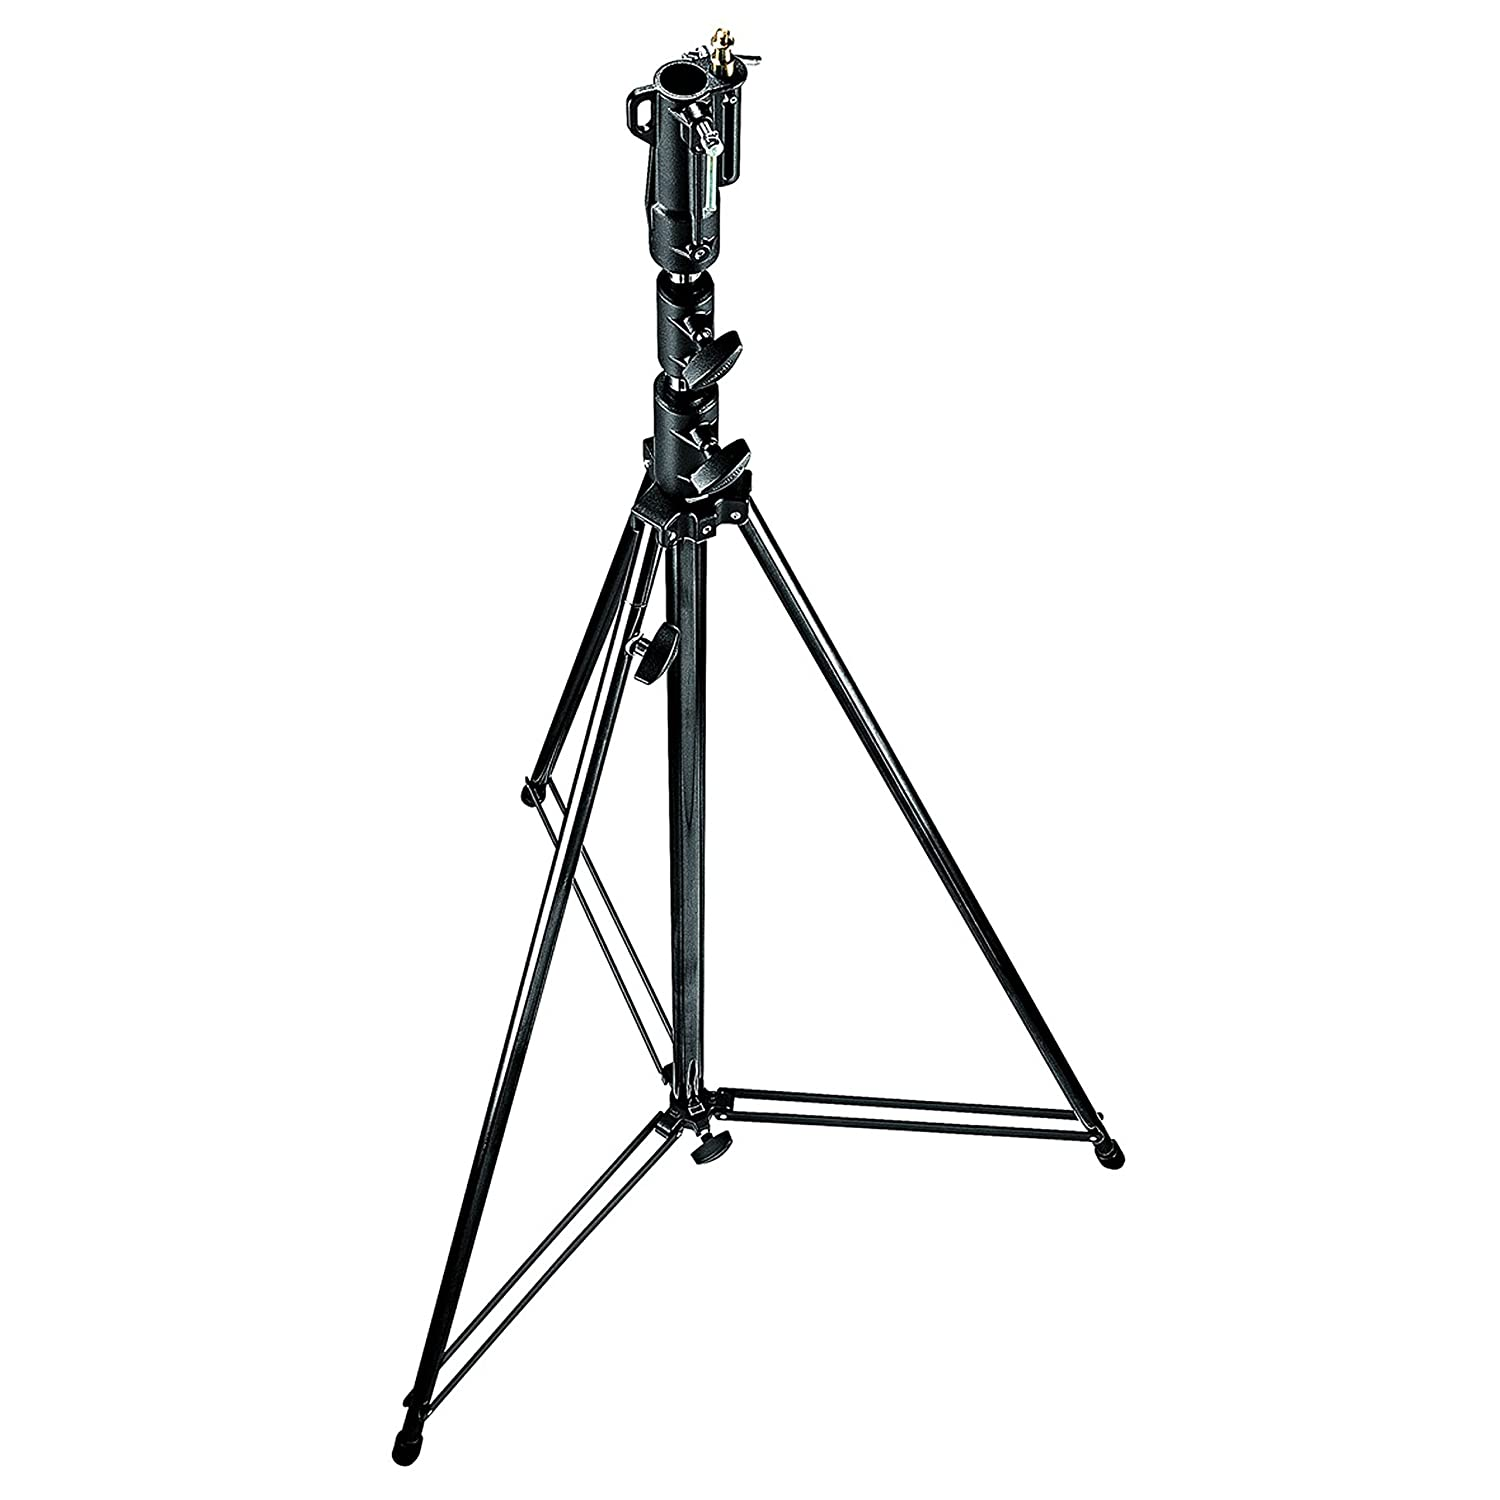 Treppiede professionale portata 20 kg braccio regolabile: 210-470 mm custodia inclusa ingombro 45 cm per treppiedi Kingjoy Dolly VX600D